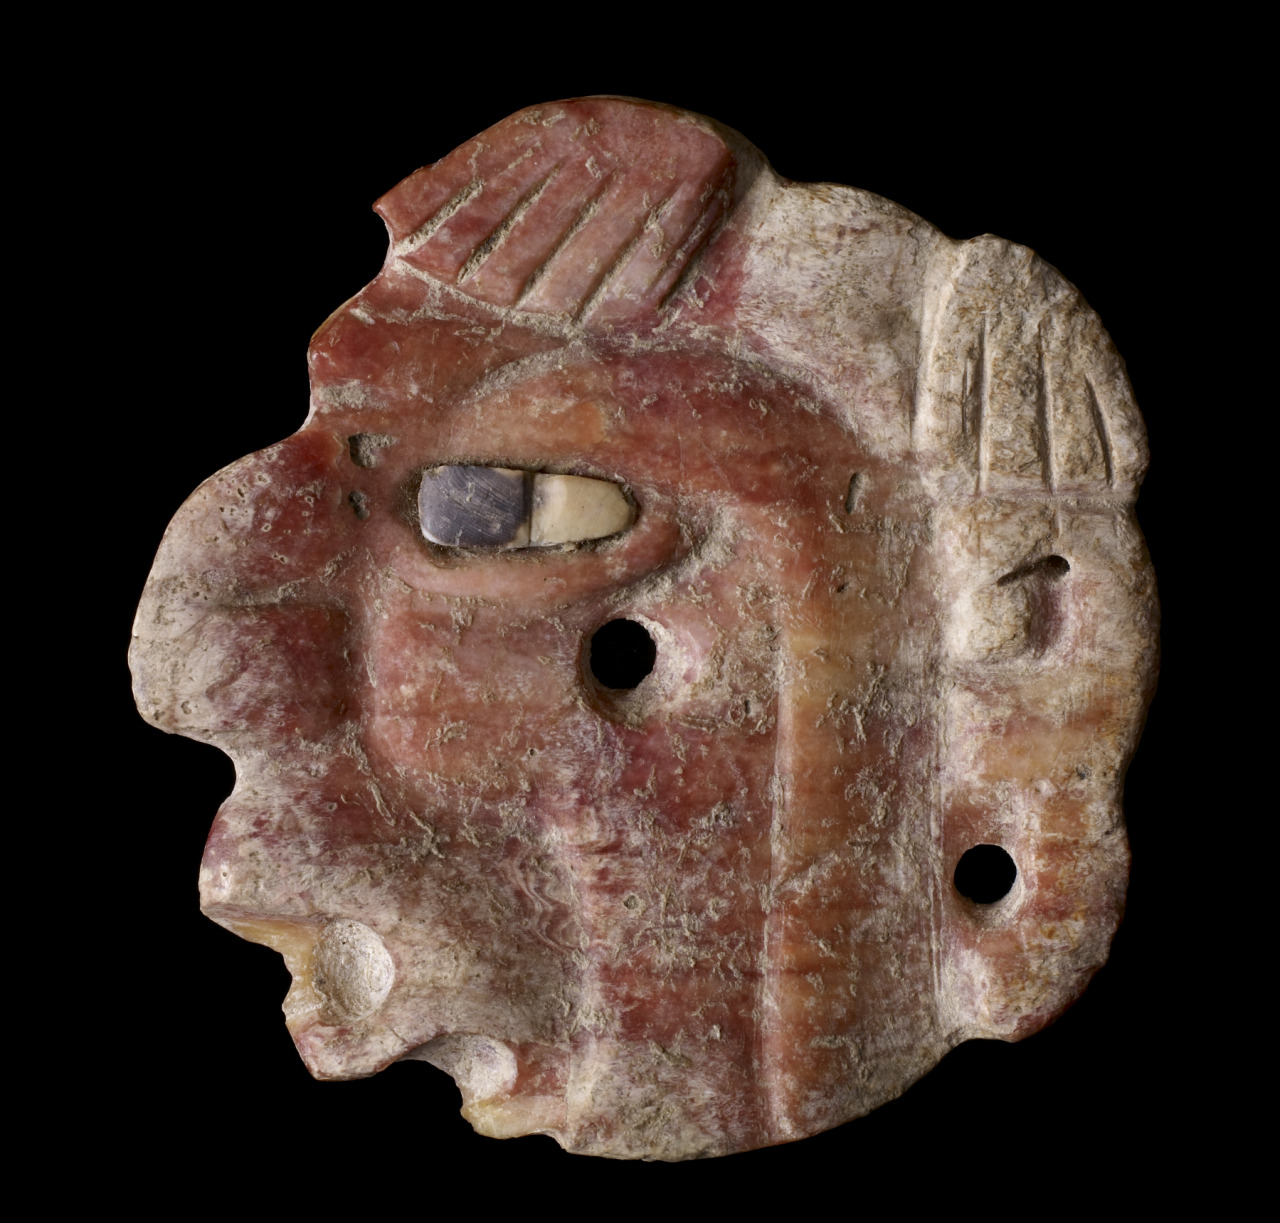 Mayan Engraved Profile Head with Inlaid Eye, AD 600-900 (Late Classic), made of shell with inlay. Courtesy & currently located at the Walters Art Museum, USA.